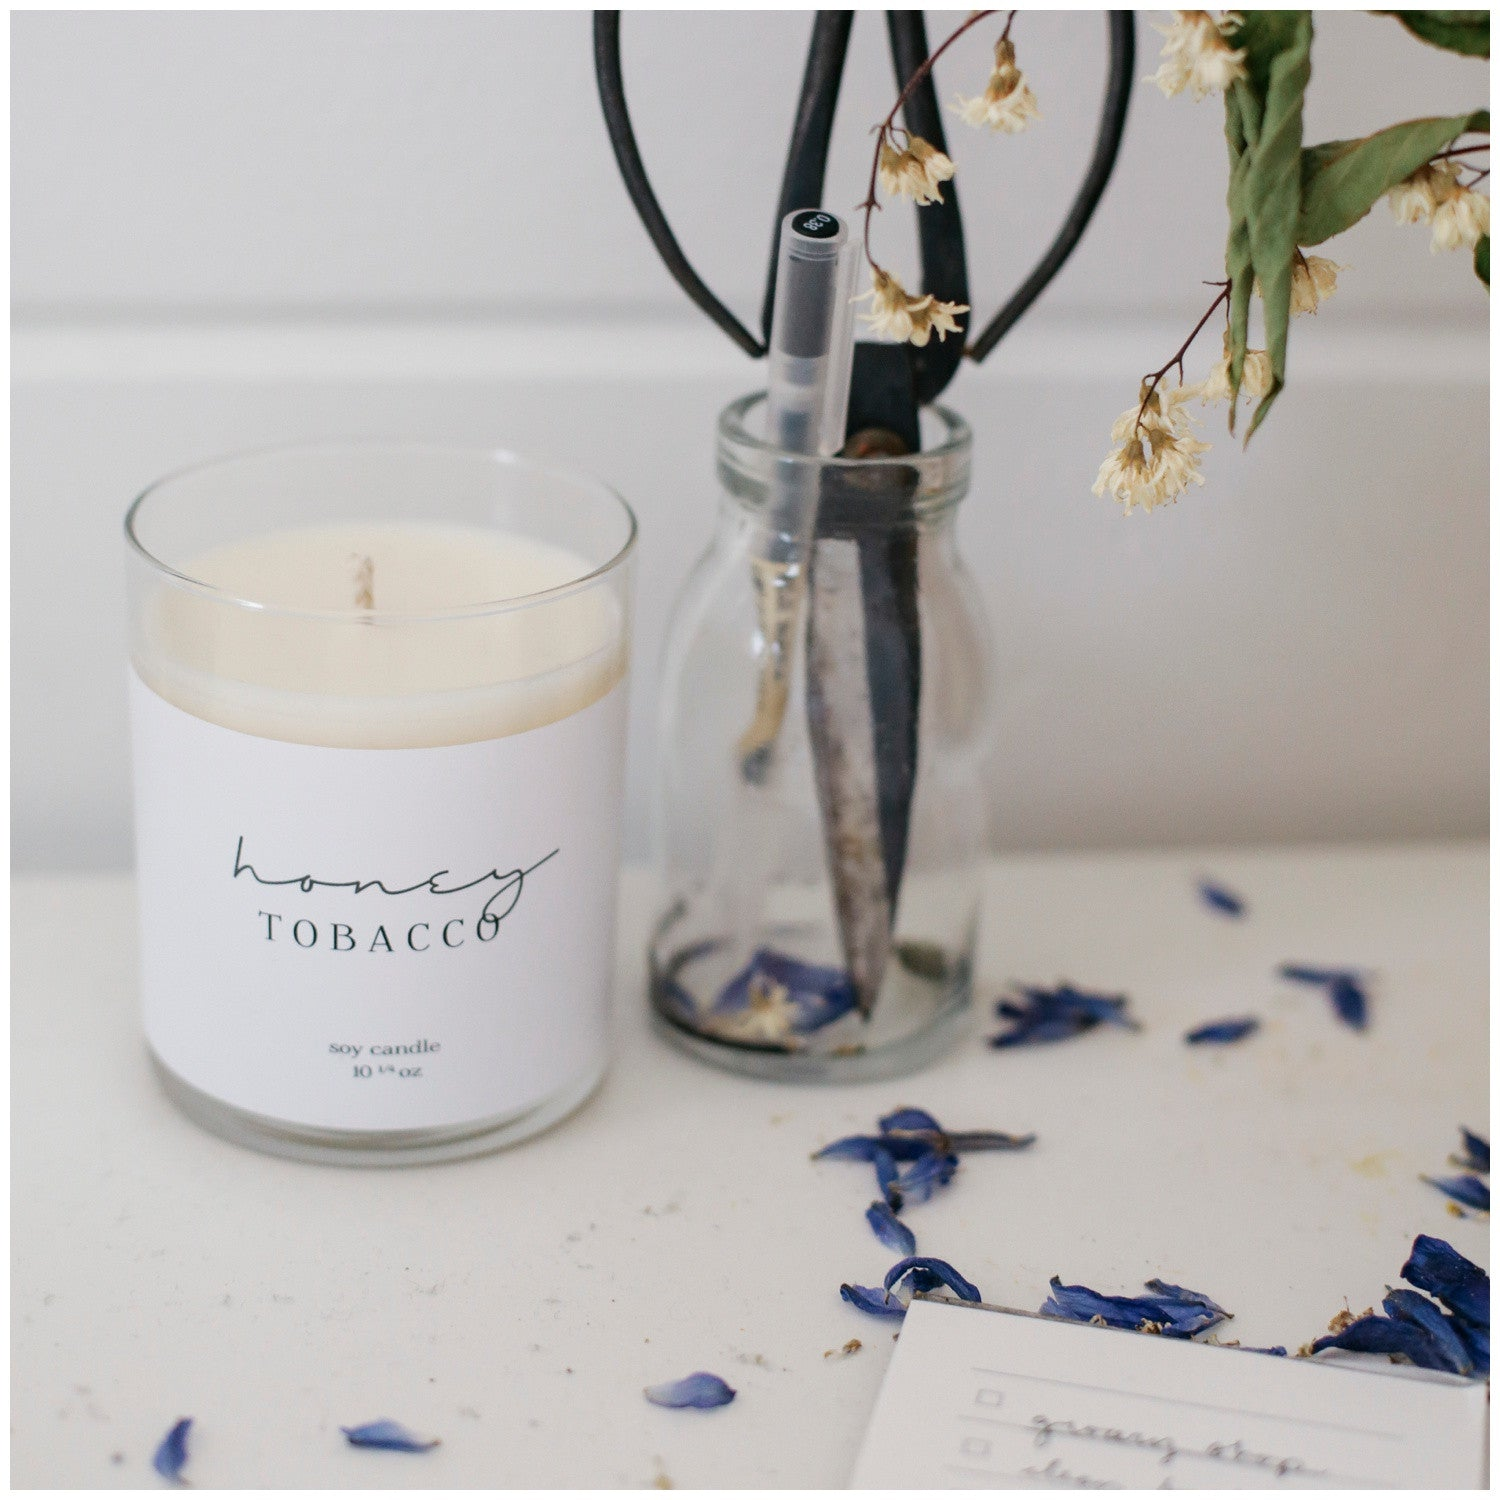 How to care for your soy candle- Honey Tobacco Soy Candle- Picot Collective